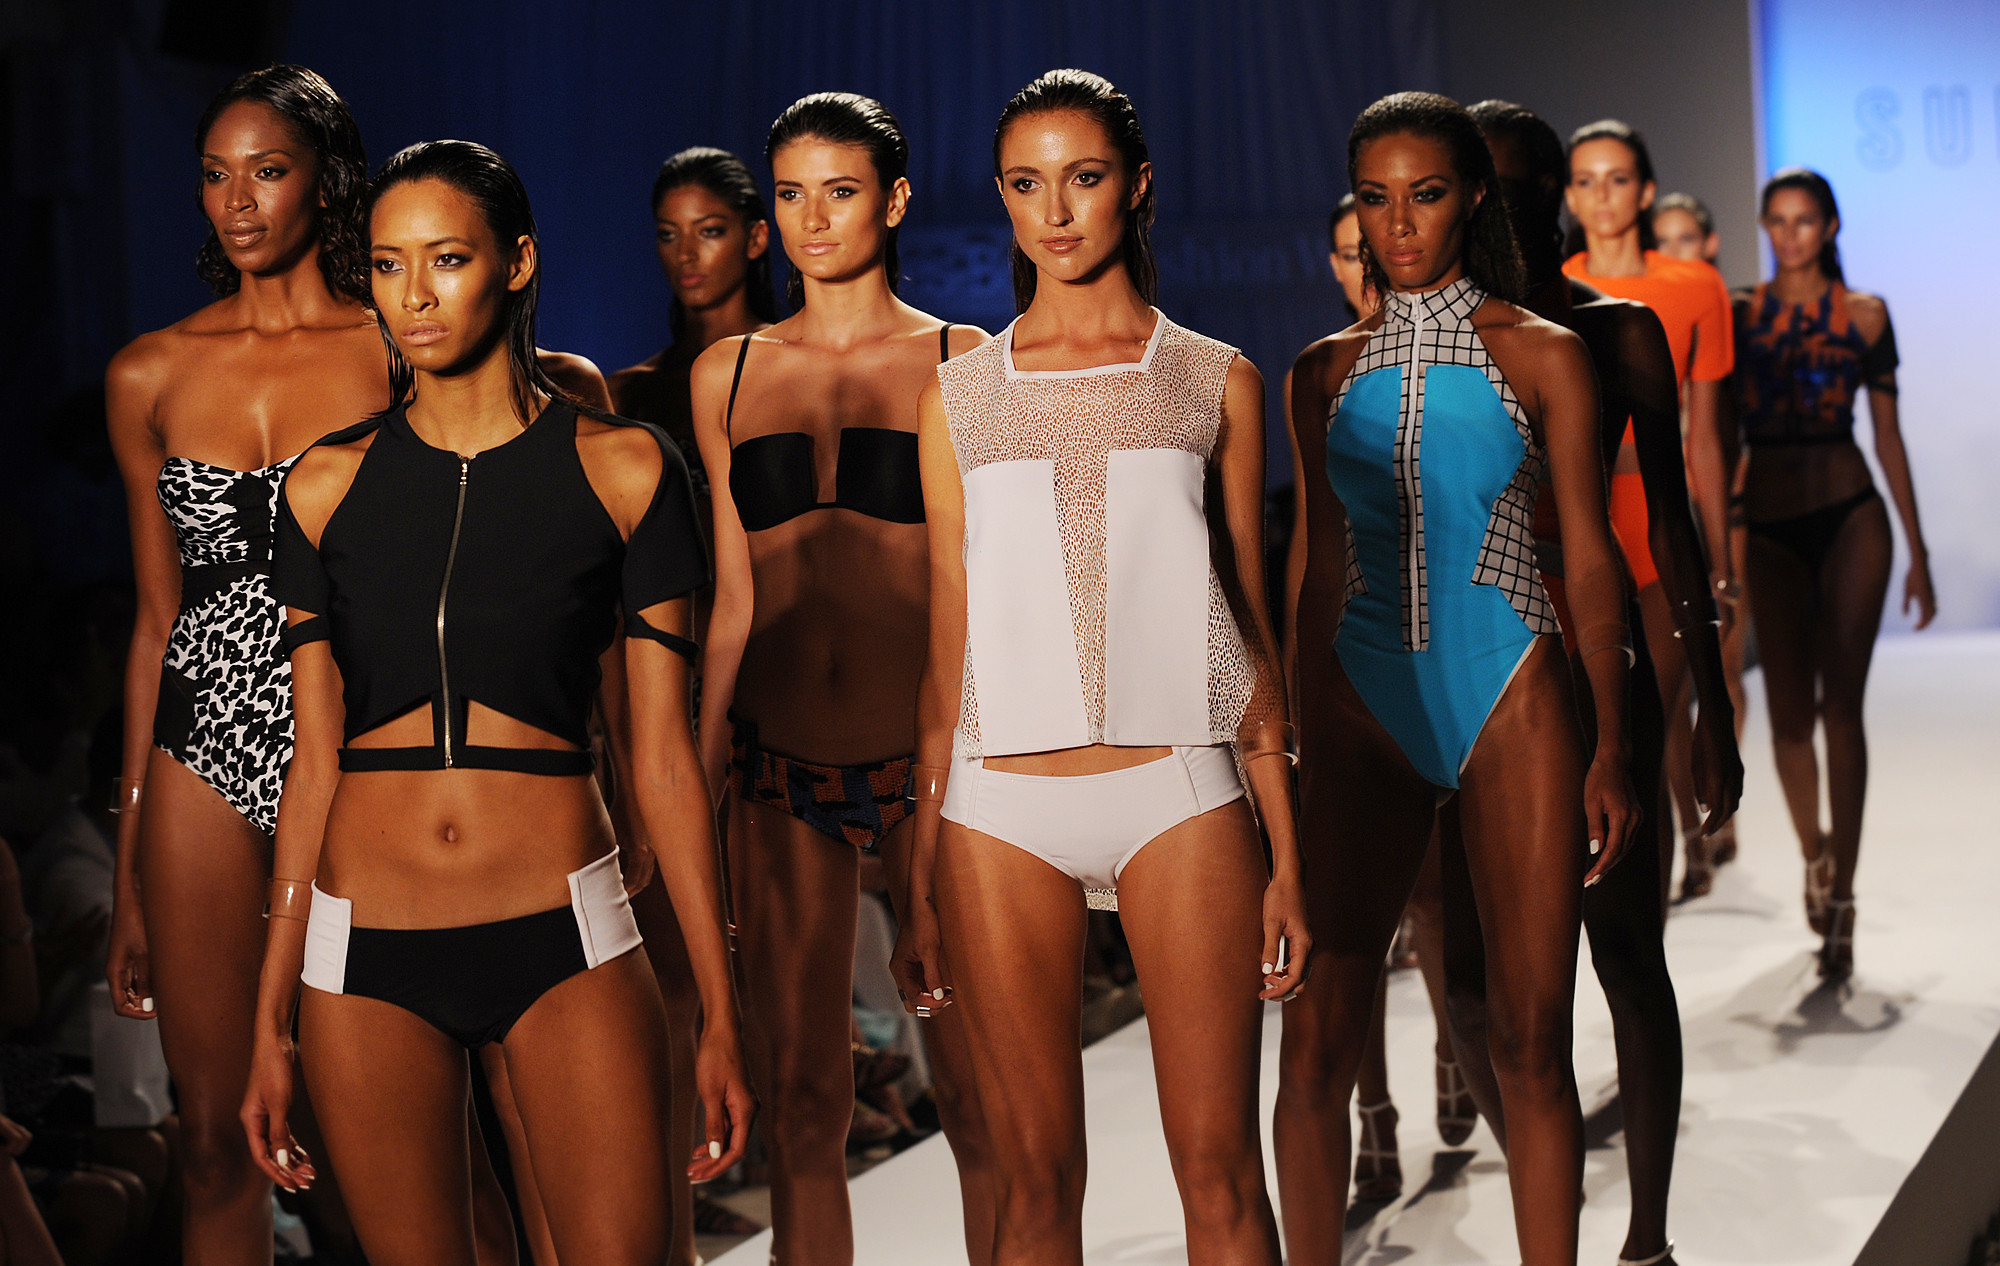 A look back at Miami Swim Week 2013 - Suboo